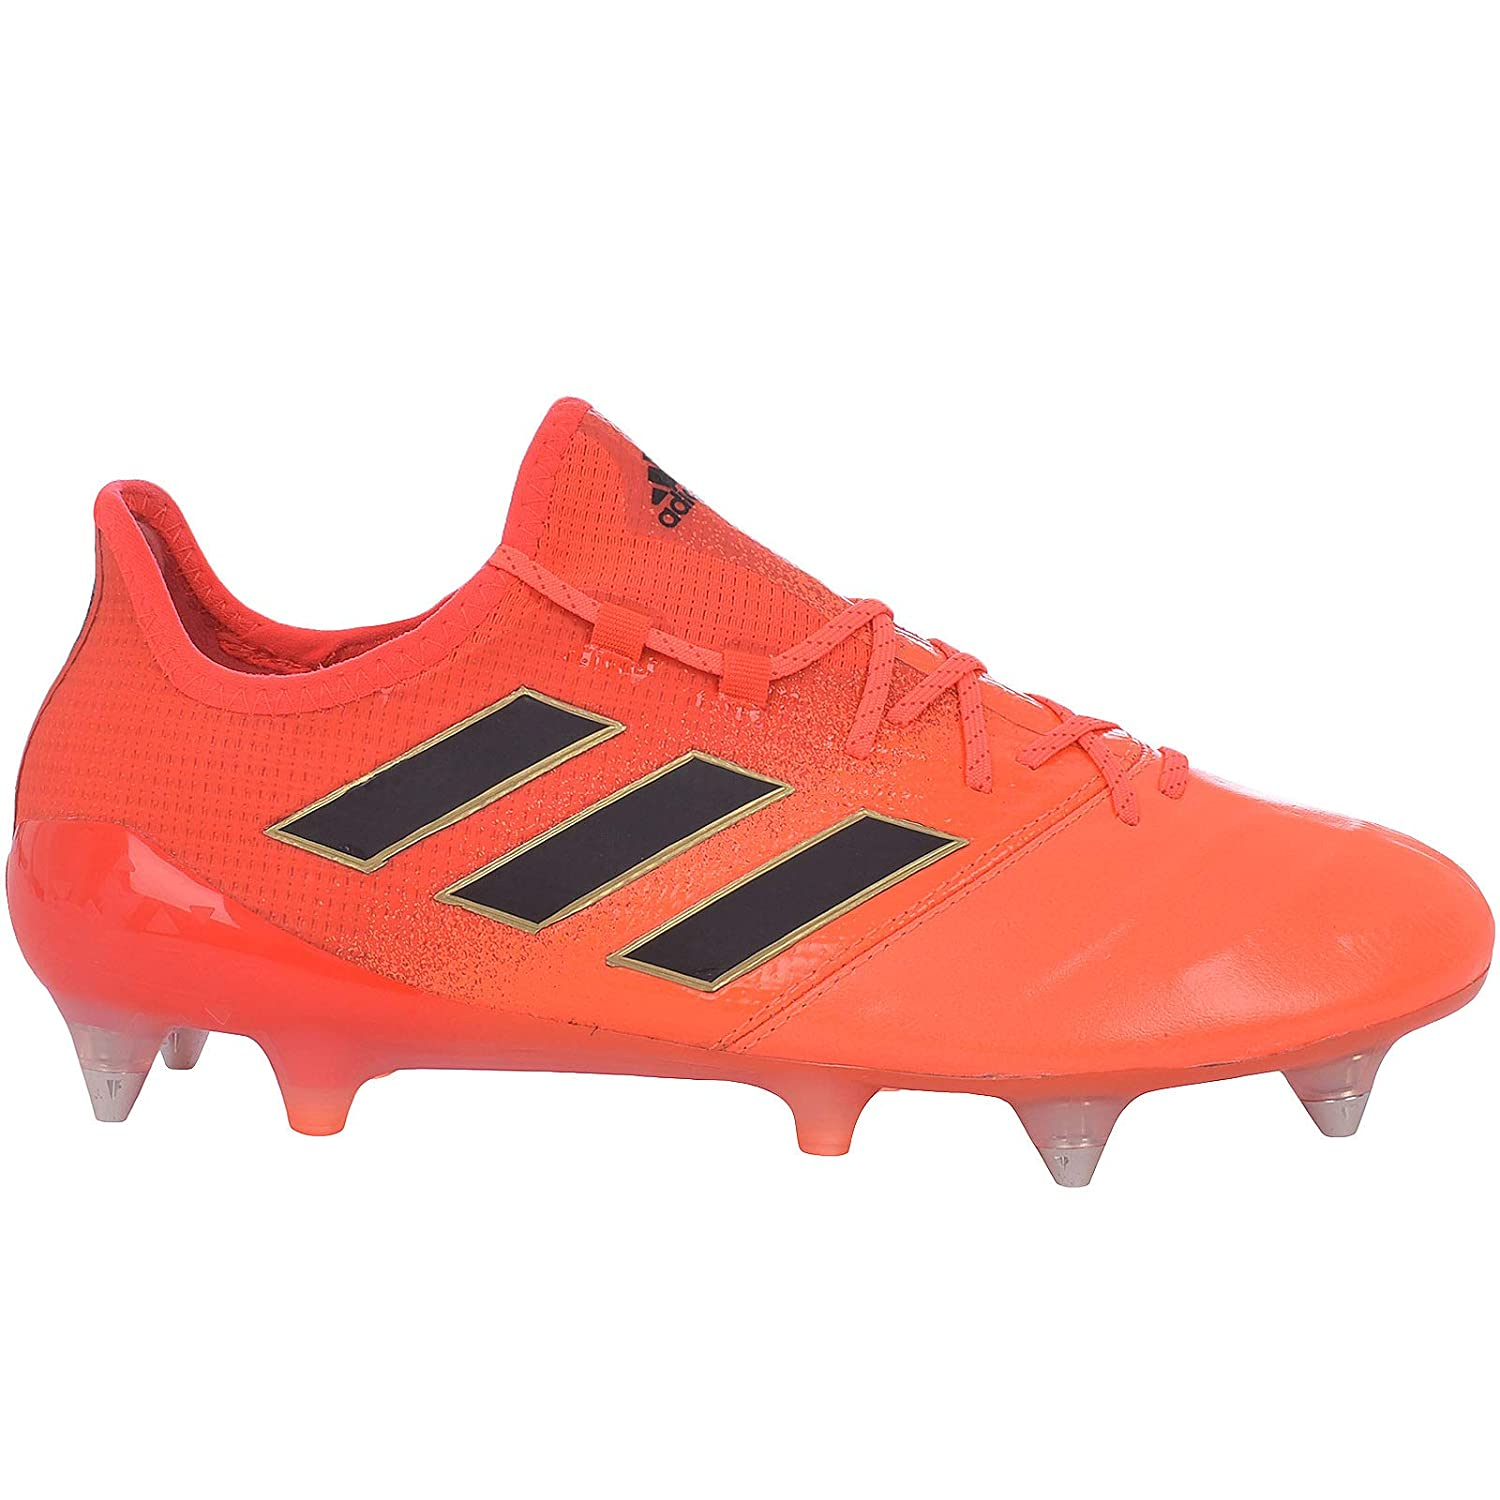 bdc18280b Amazon.com: adidas Performance Mens ACE 17.1 Leather SG Soccer Boots -  Orange: Sports & Outdoors